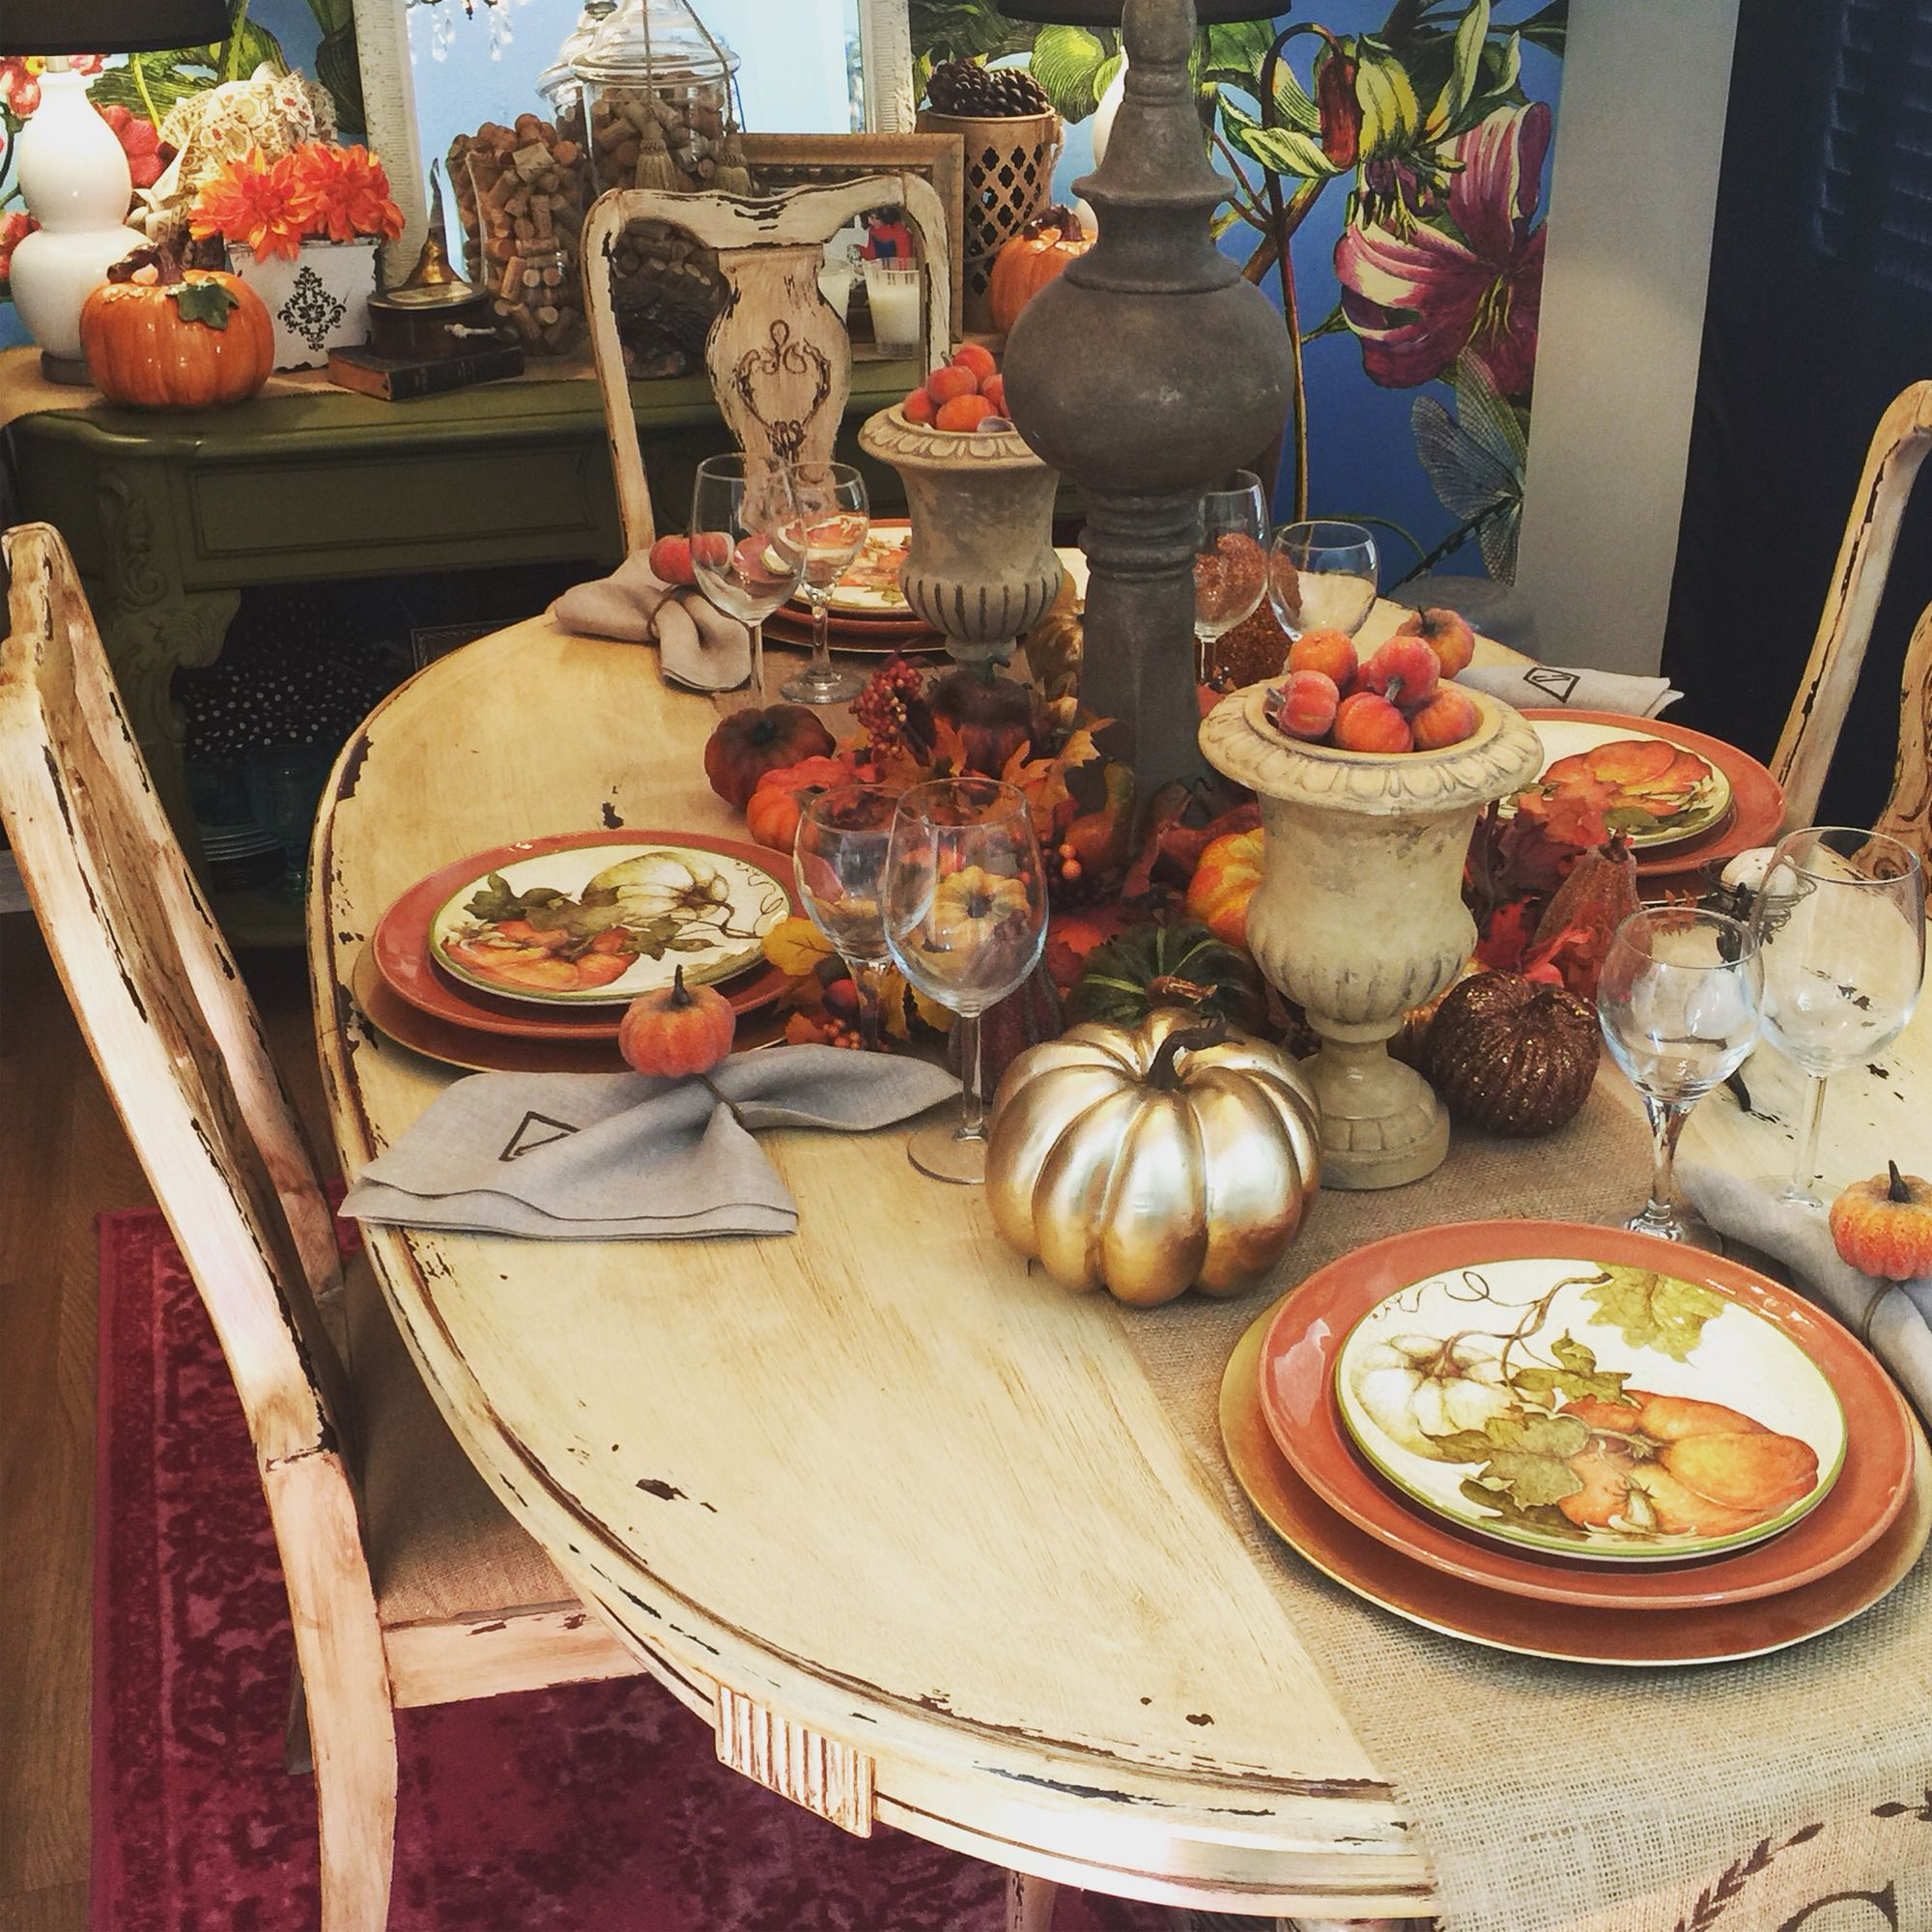 Fall 2016 tablescape   Tablescapes, Home decor, Table settings